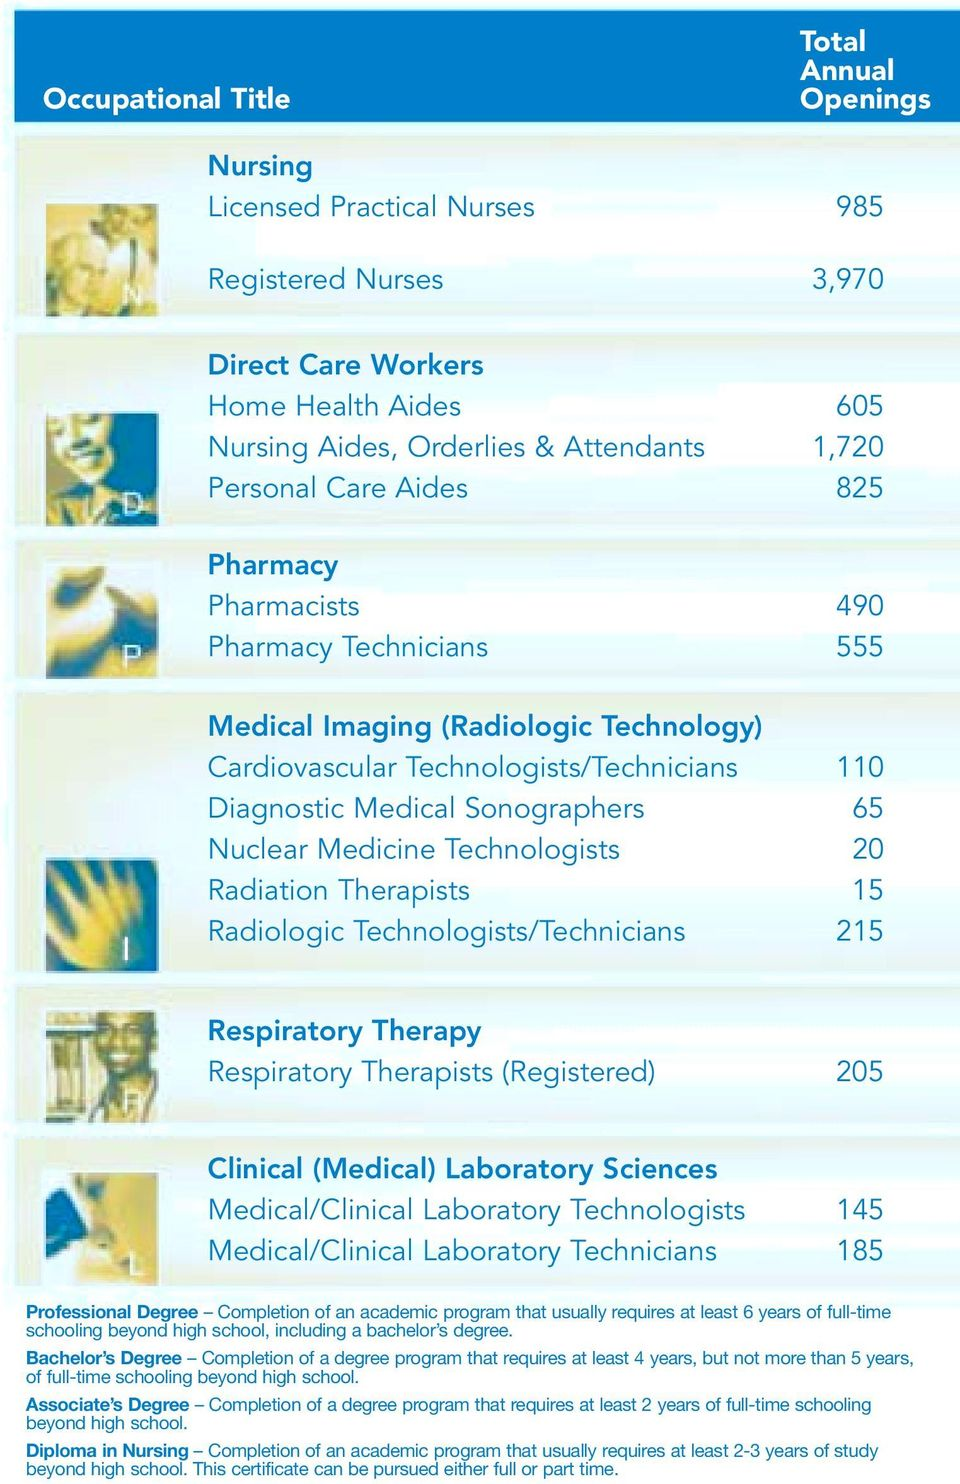 Medicine Technologists 20 Radiation Therapists 15 Radiologic Technologists/Technicians 215 Respiratory Therapy Respiratory Therapists (Registered) 205 Clinical (Medical) Laboratory Sciences